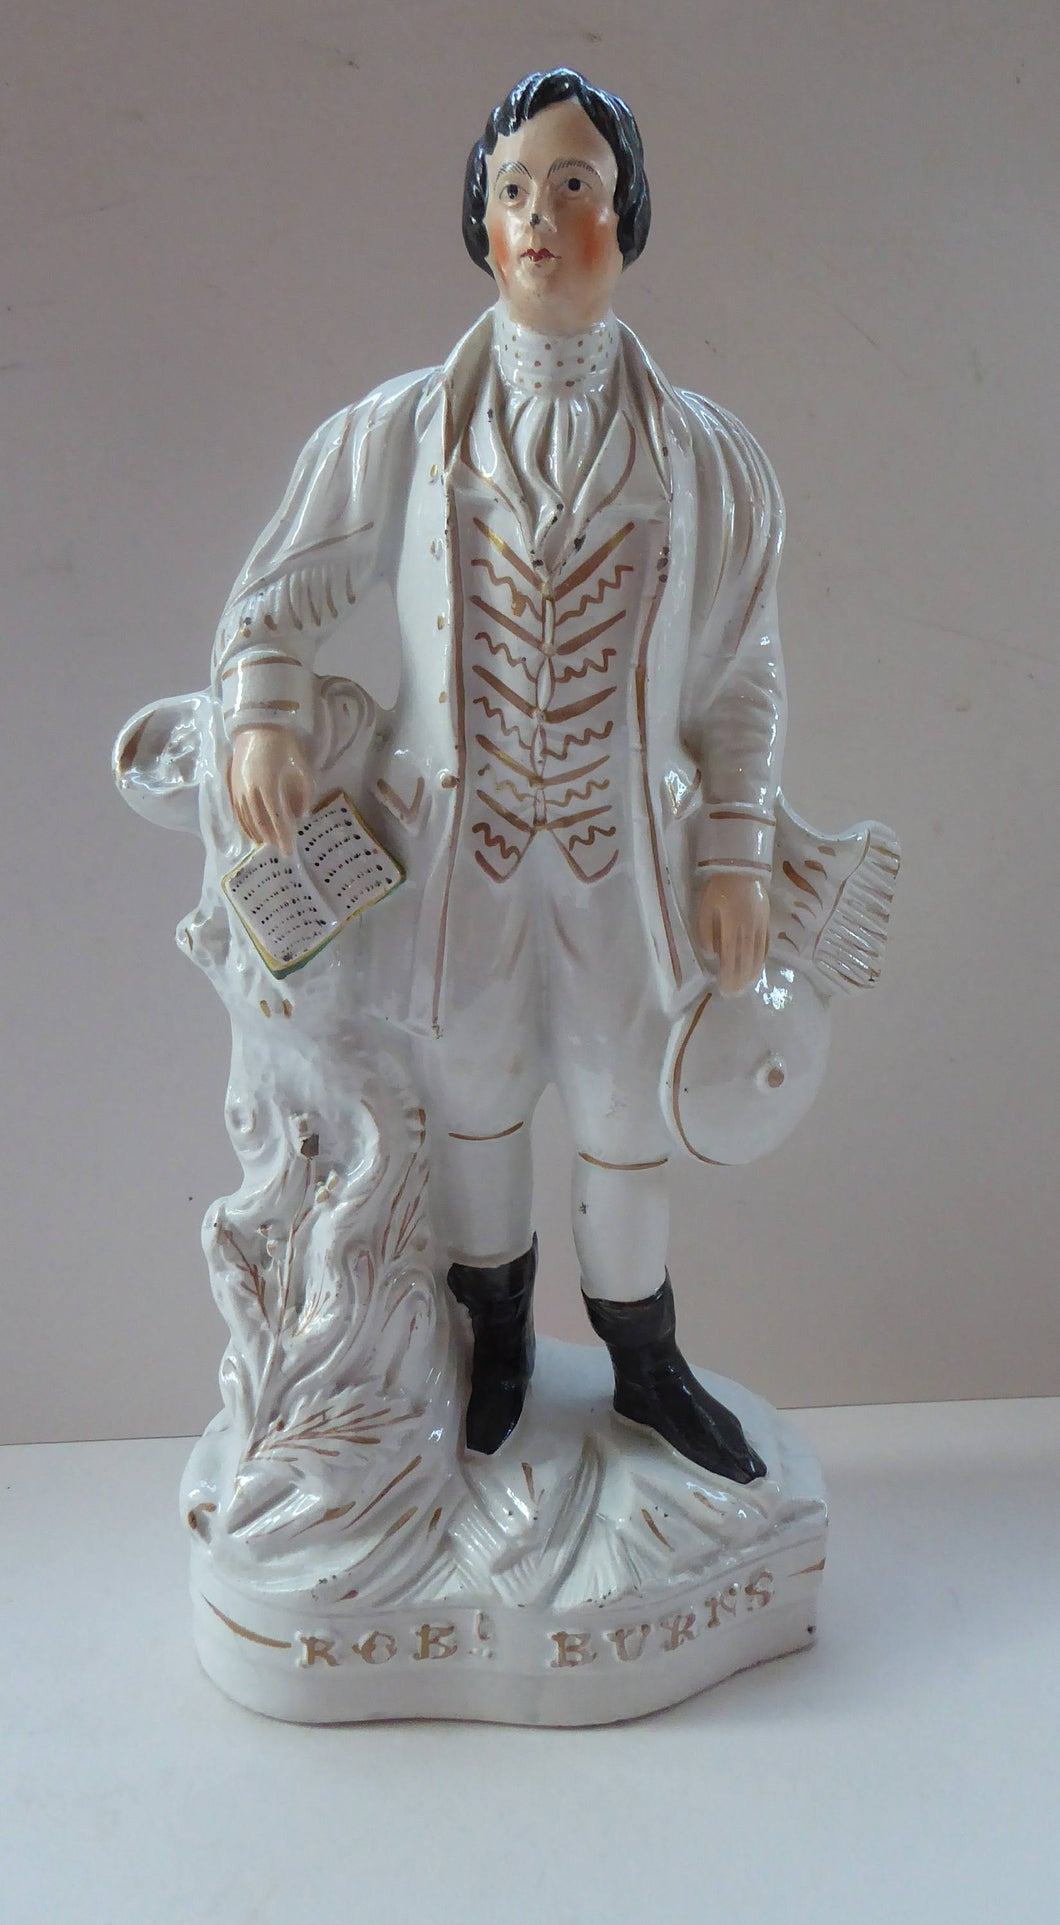 ROBERT BURNS. Large  Antique Victorian Staffordshire Flatback Figurine of the Celebrated Scottish Poet. 13 1/4 inches